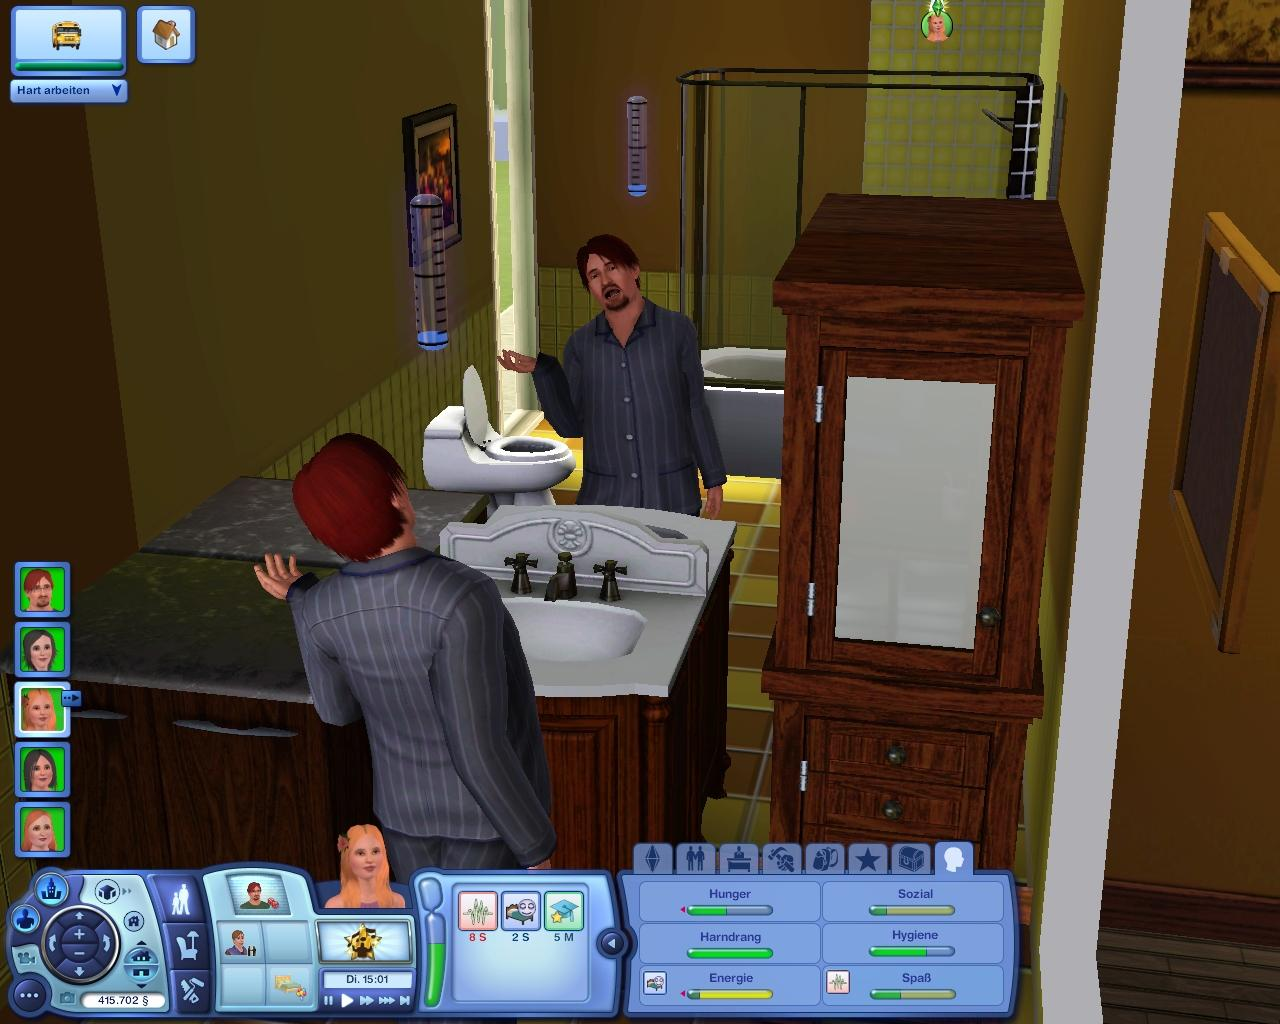 how to kill a sim in sims 3 xbox 360